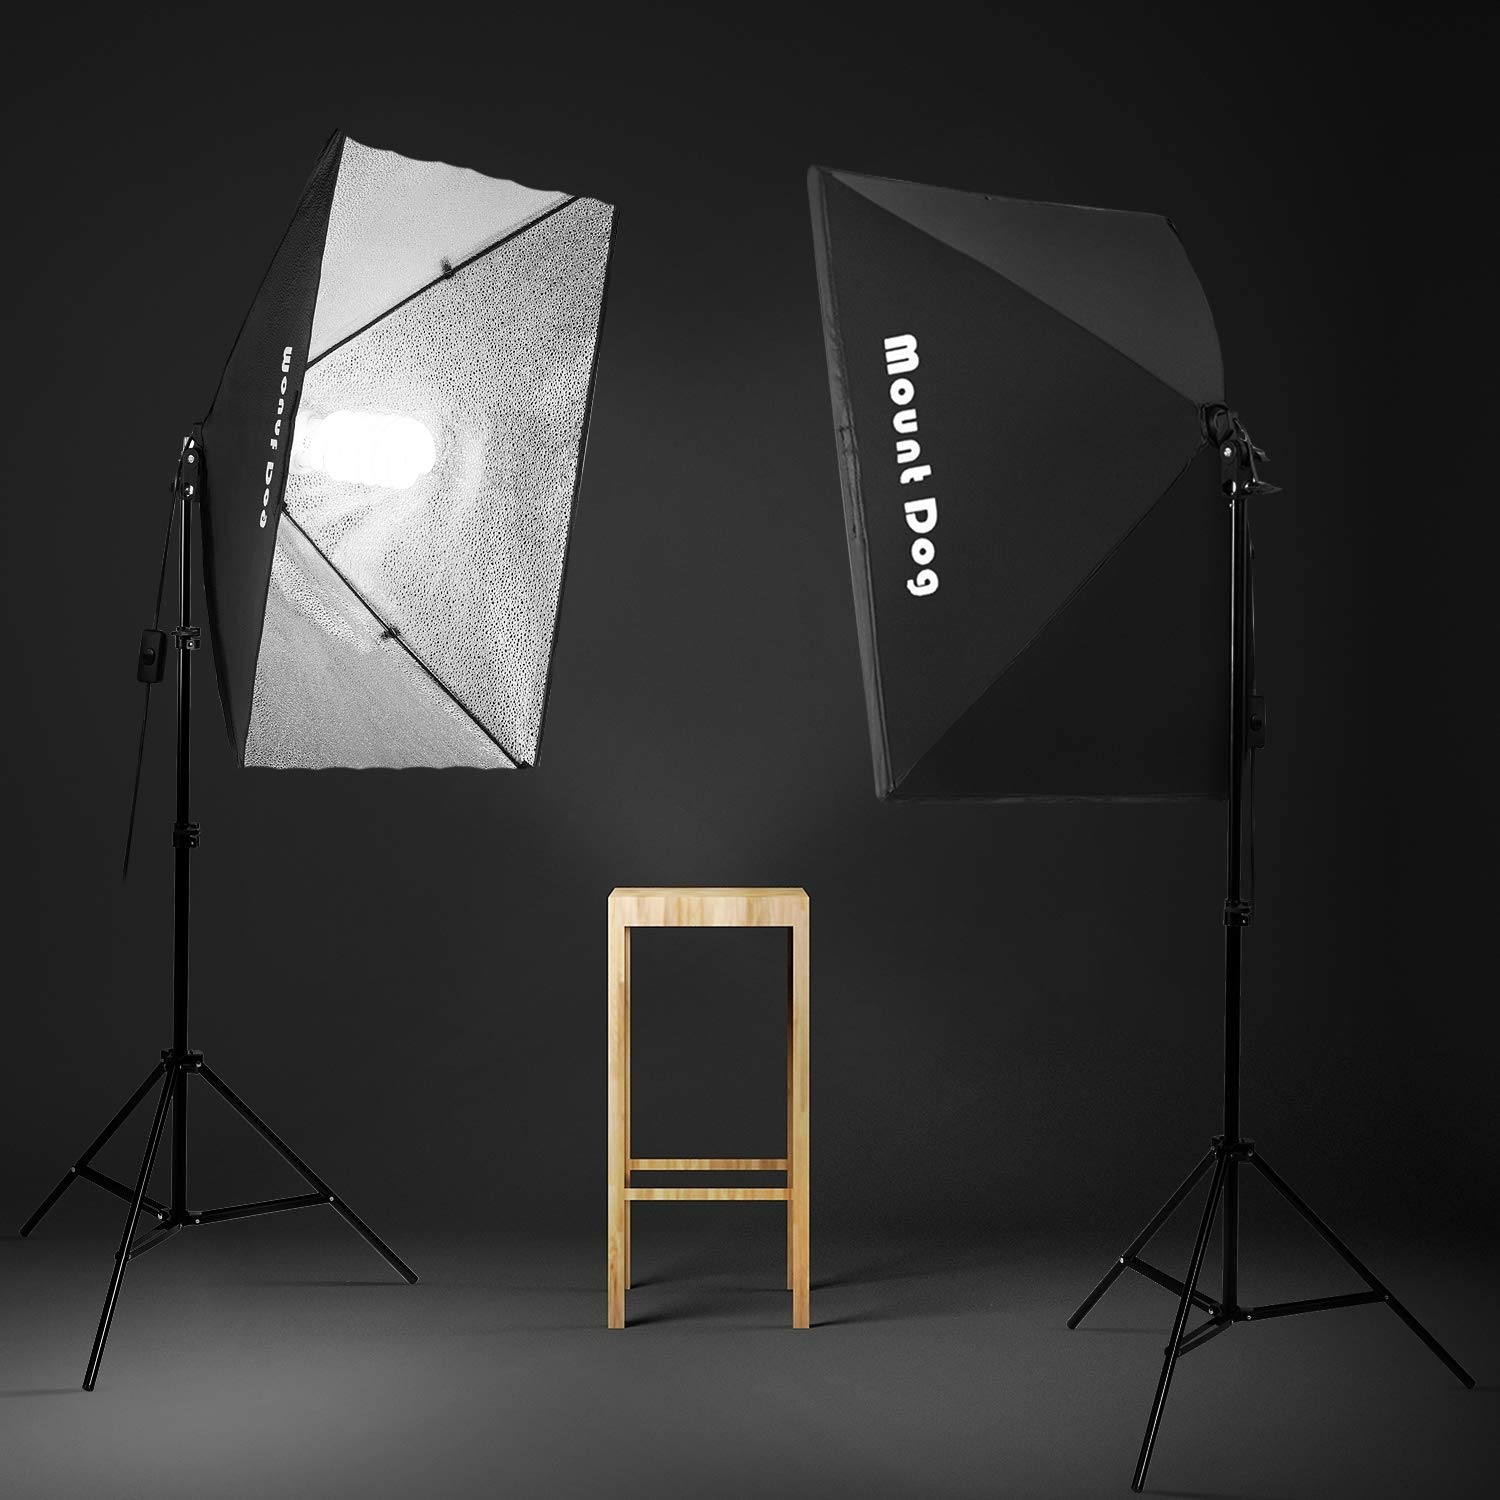 MOUNTDOG 1350W Photography Softbox Lighting Kit 20''X28'' Professional Continuous Light System with 3pcs E27 Video Bulbs 5500K Photo Studio Equipment for Filming Model Portraits Advertising Shooting by MOUNTDOG (Image #4)